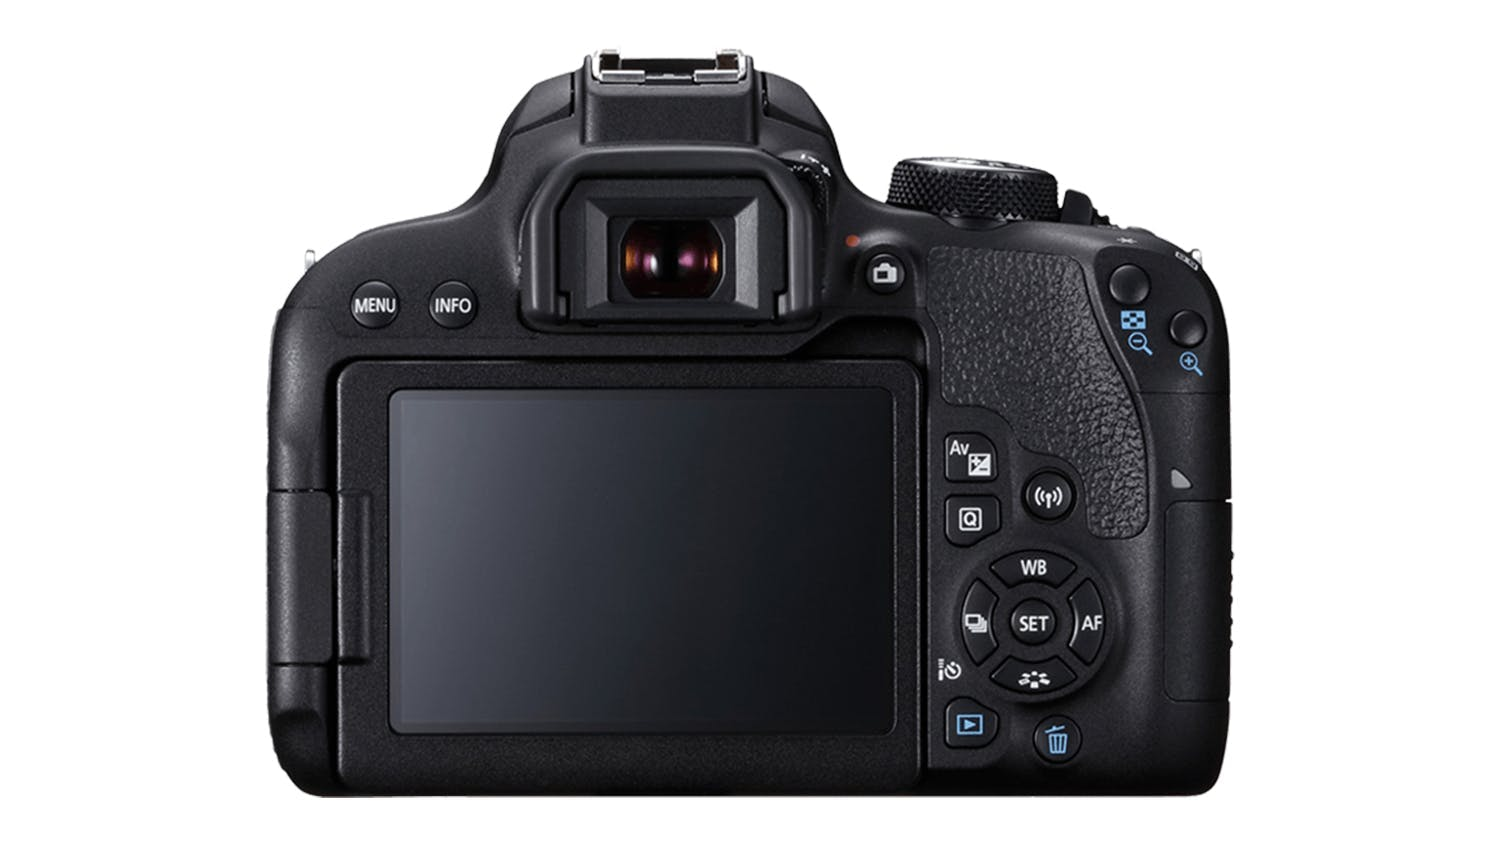 Canon EOS 800D DSLR with 18-55mm Lens